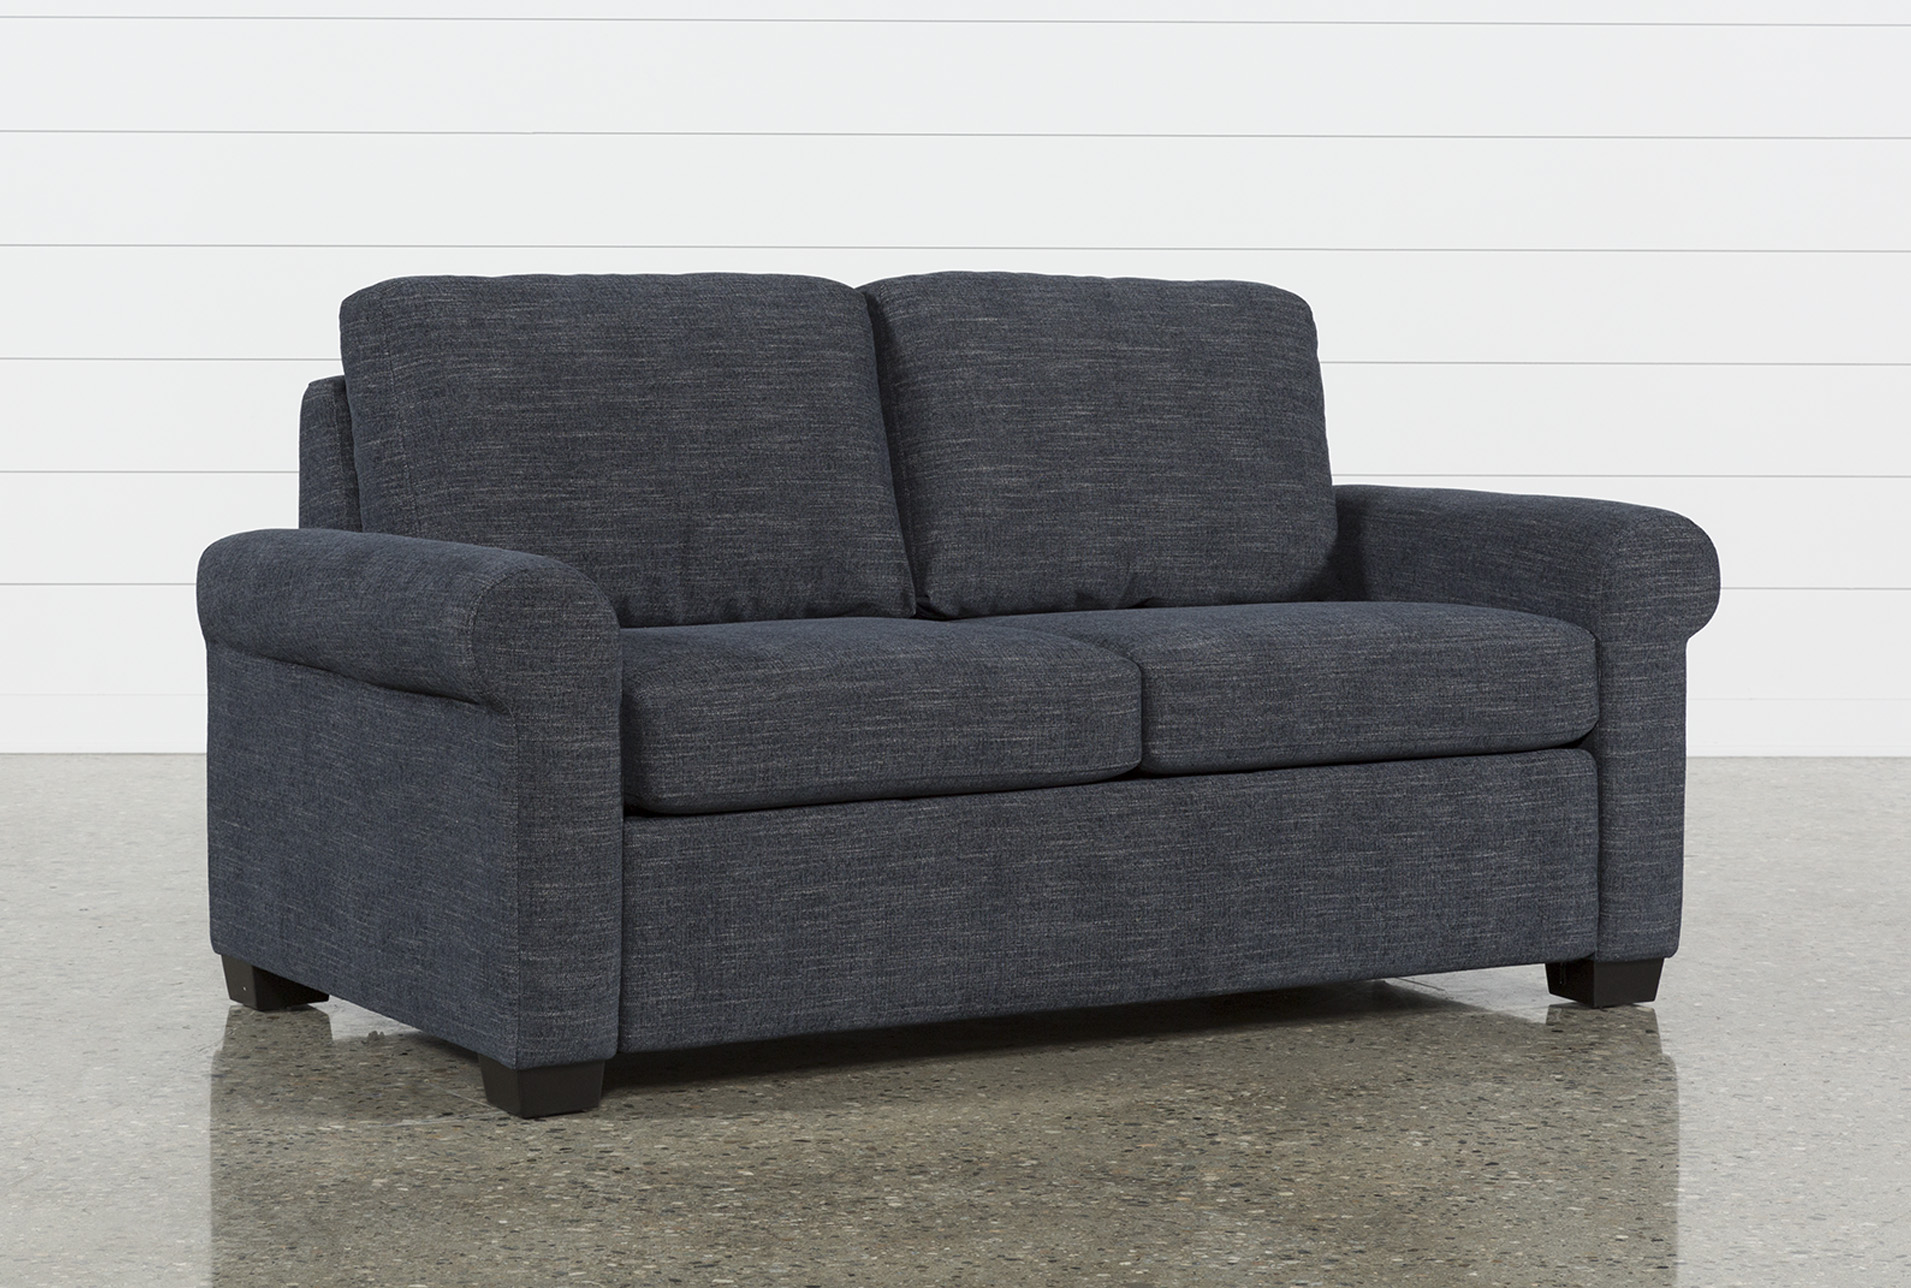 alaina sofa bed queen sleeper ashley sectional sofas alexis denim full living spaces qty 1 has been successfully added to your cart